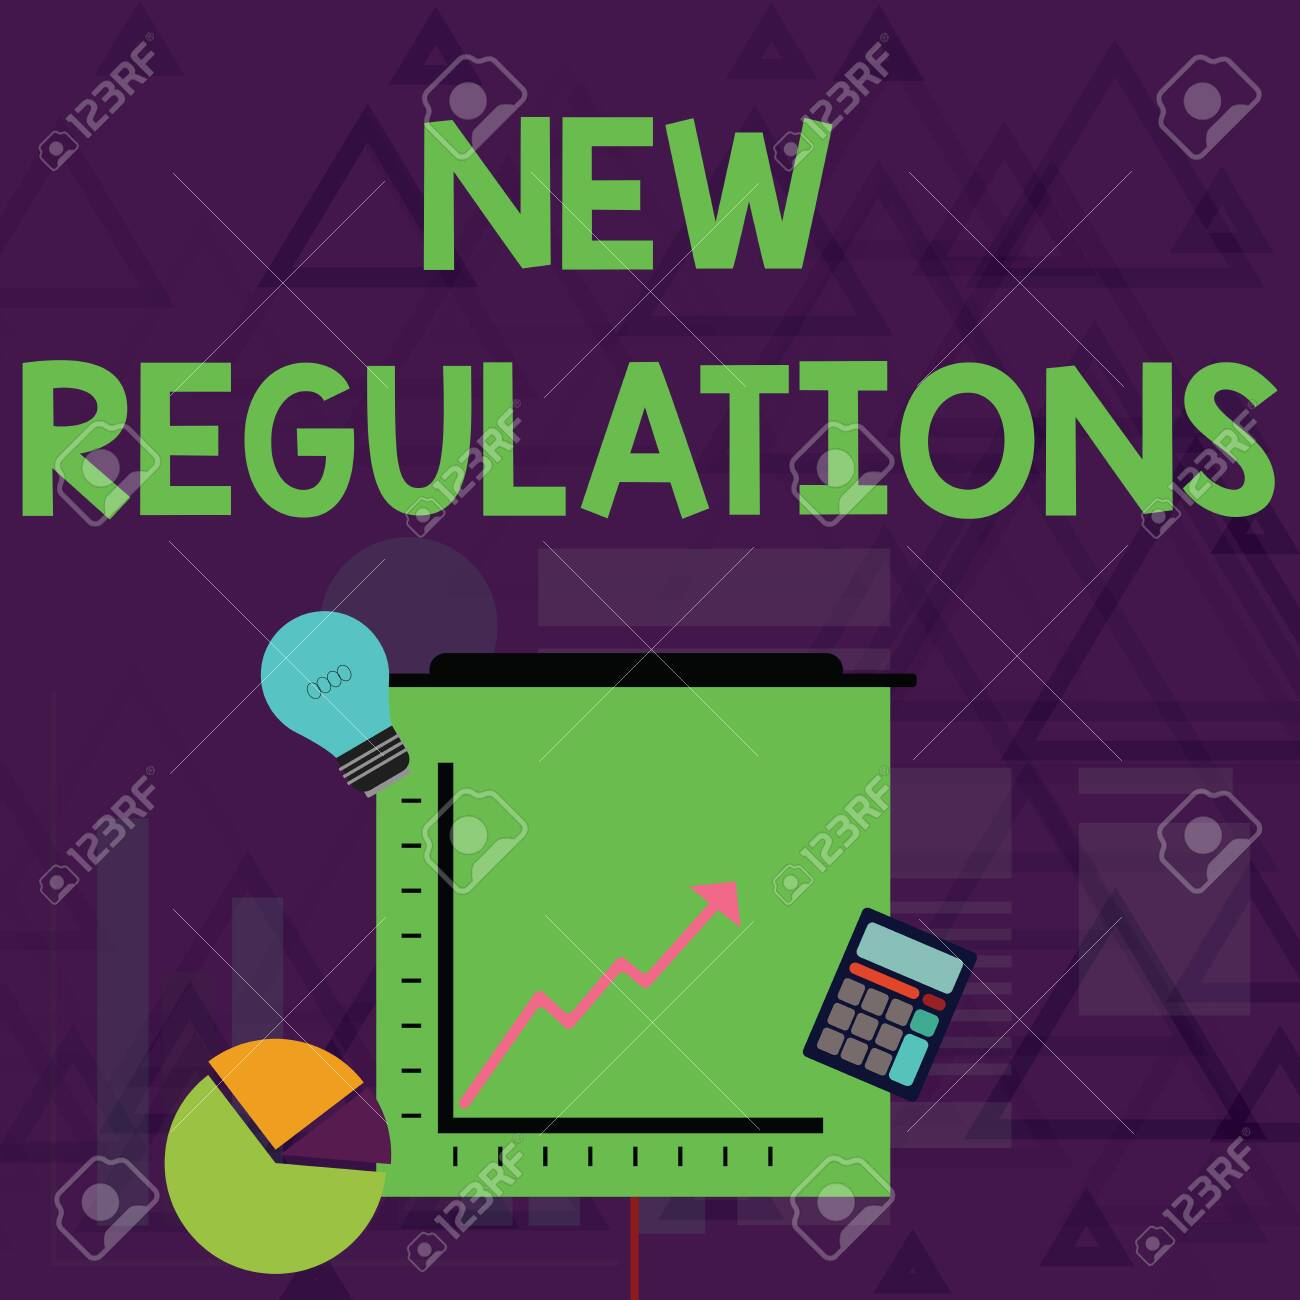 Writing note showing New Regulations. Business concept for Regulation controlling the activity usually used by rules. Investment Icons of Pie and Line Chart with Arrow Going Up - 124979838